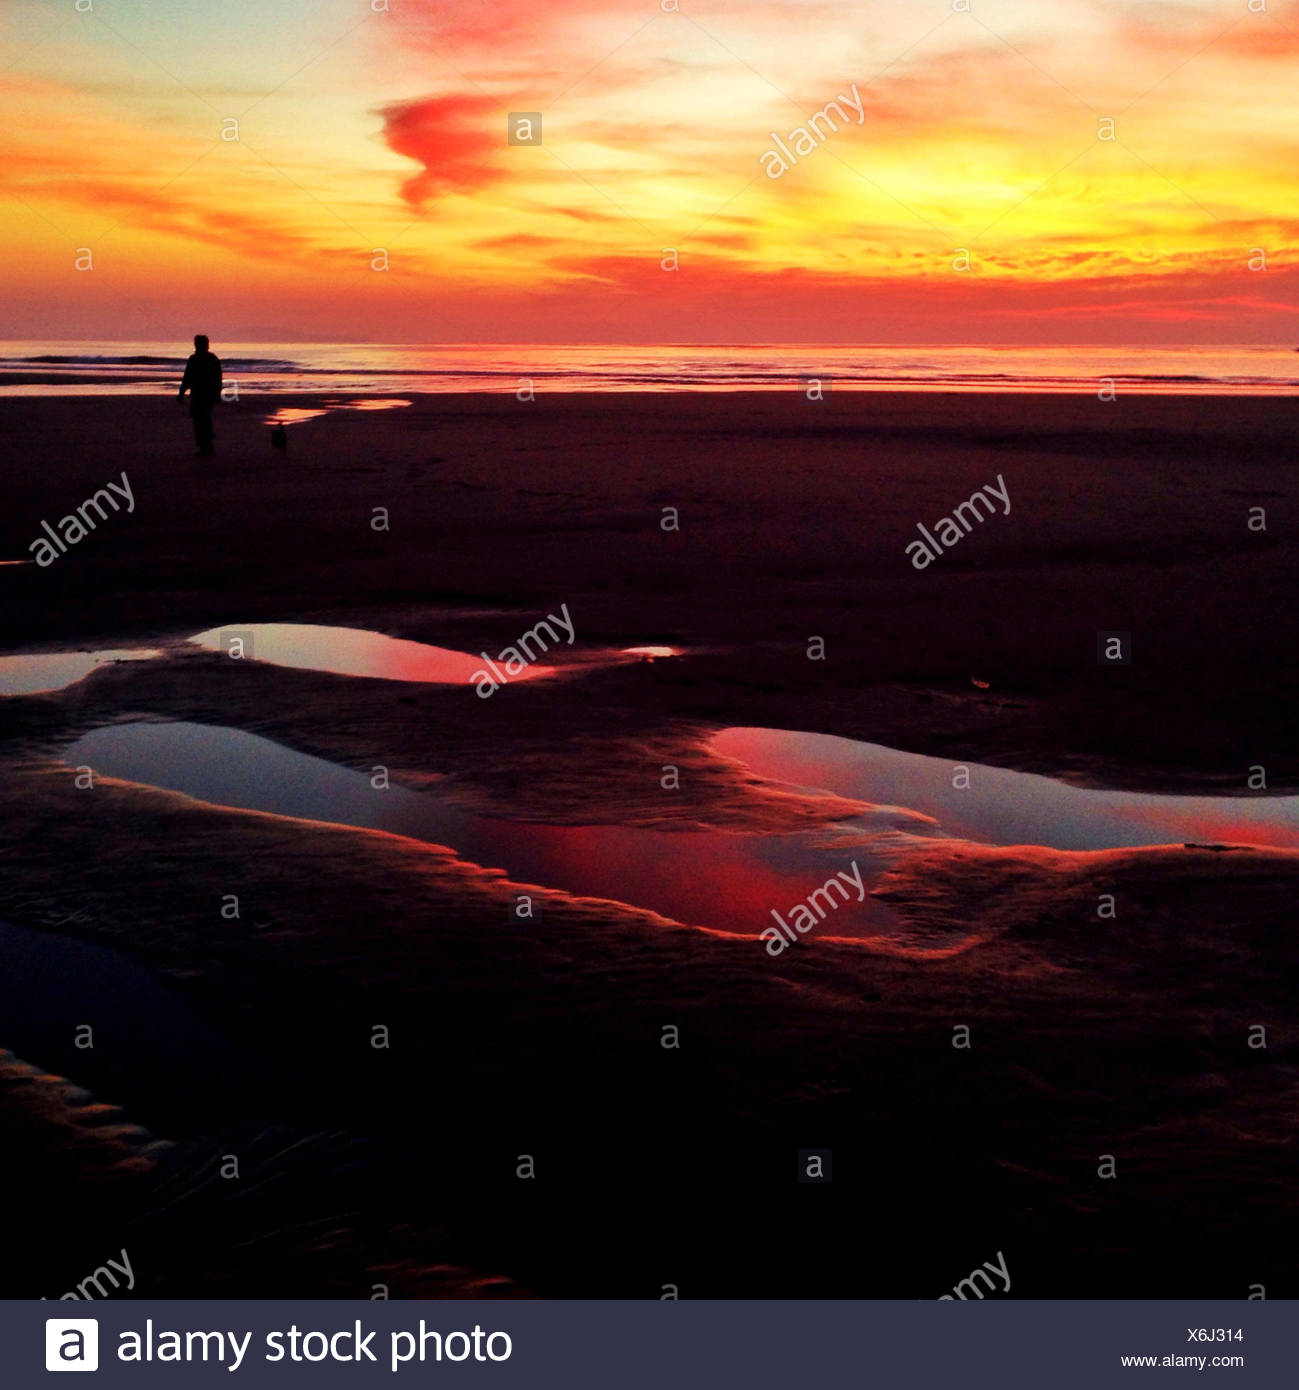 Scenic seascape at sunset - Stock Image